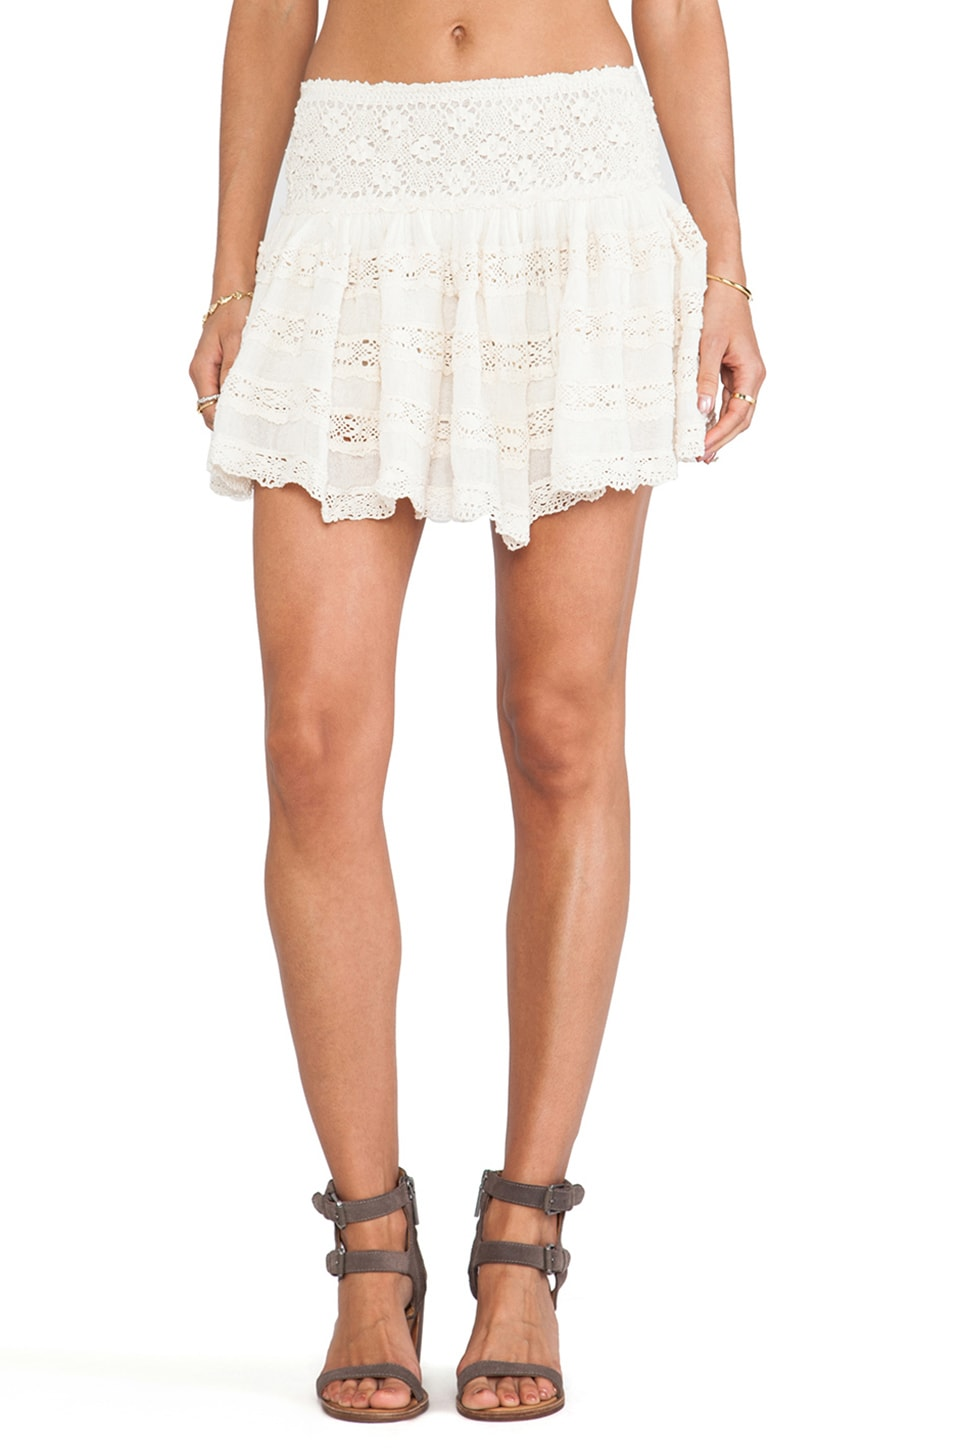 Jen's Pirate Booty Clover Mini Skirt in Natural